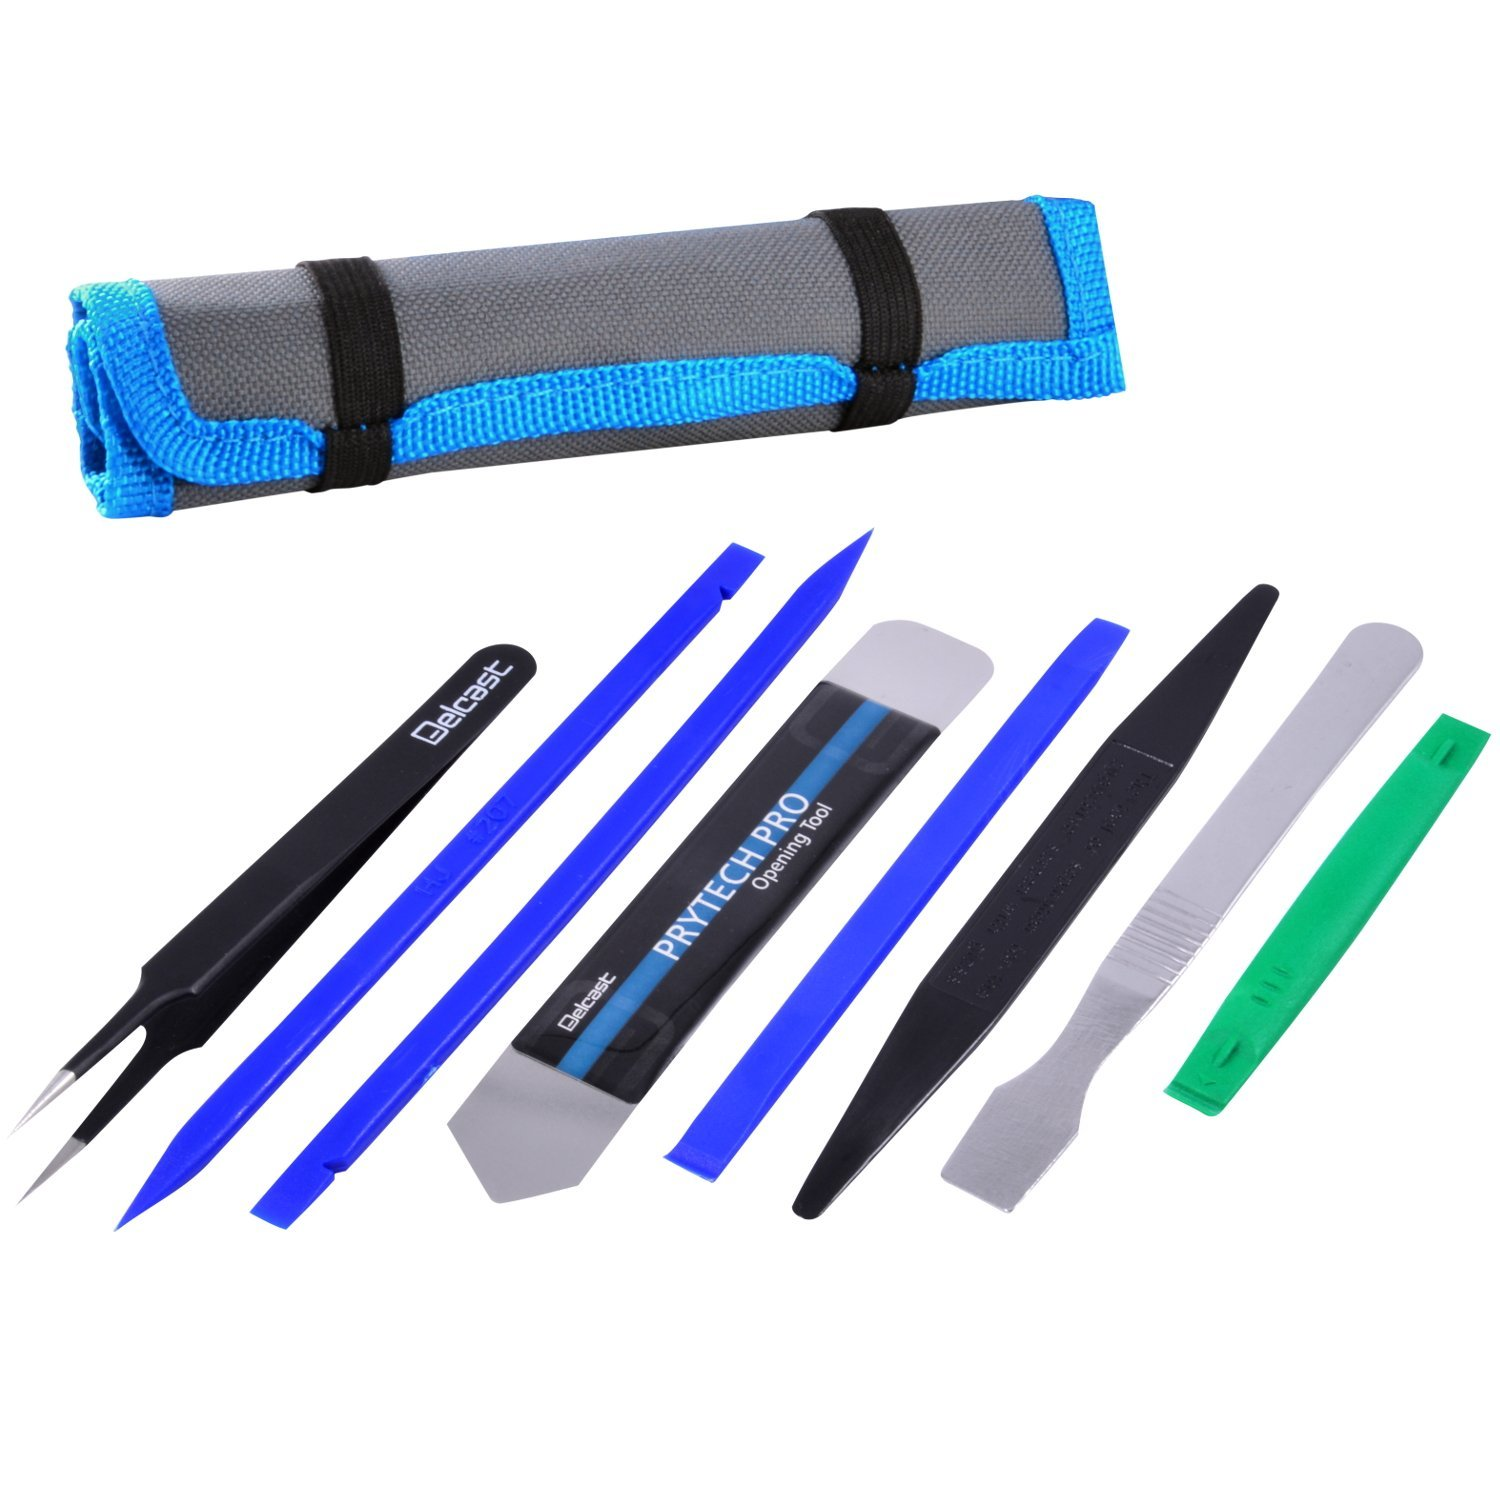 5X Plastic prying tools pair opening tools foe cellphone electronic repair to ME